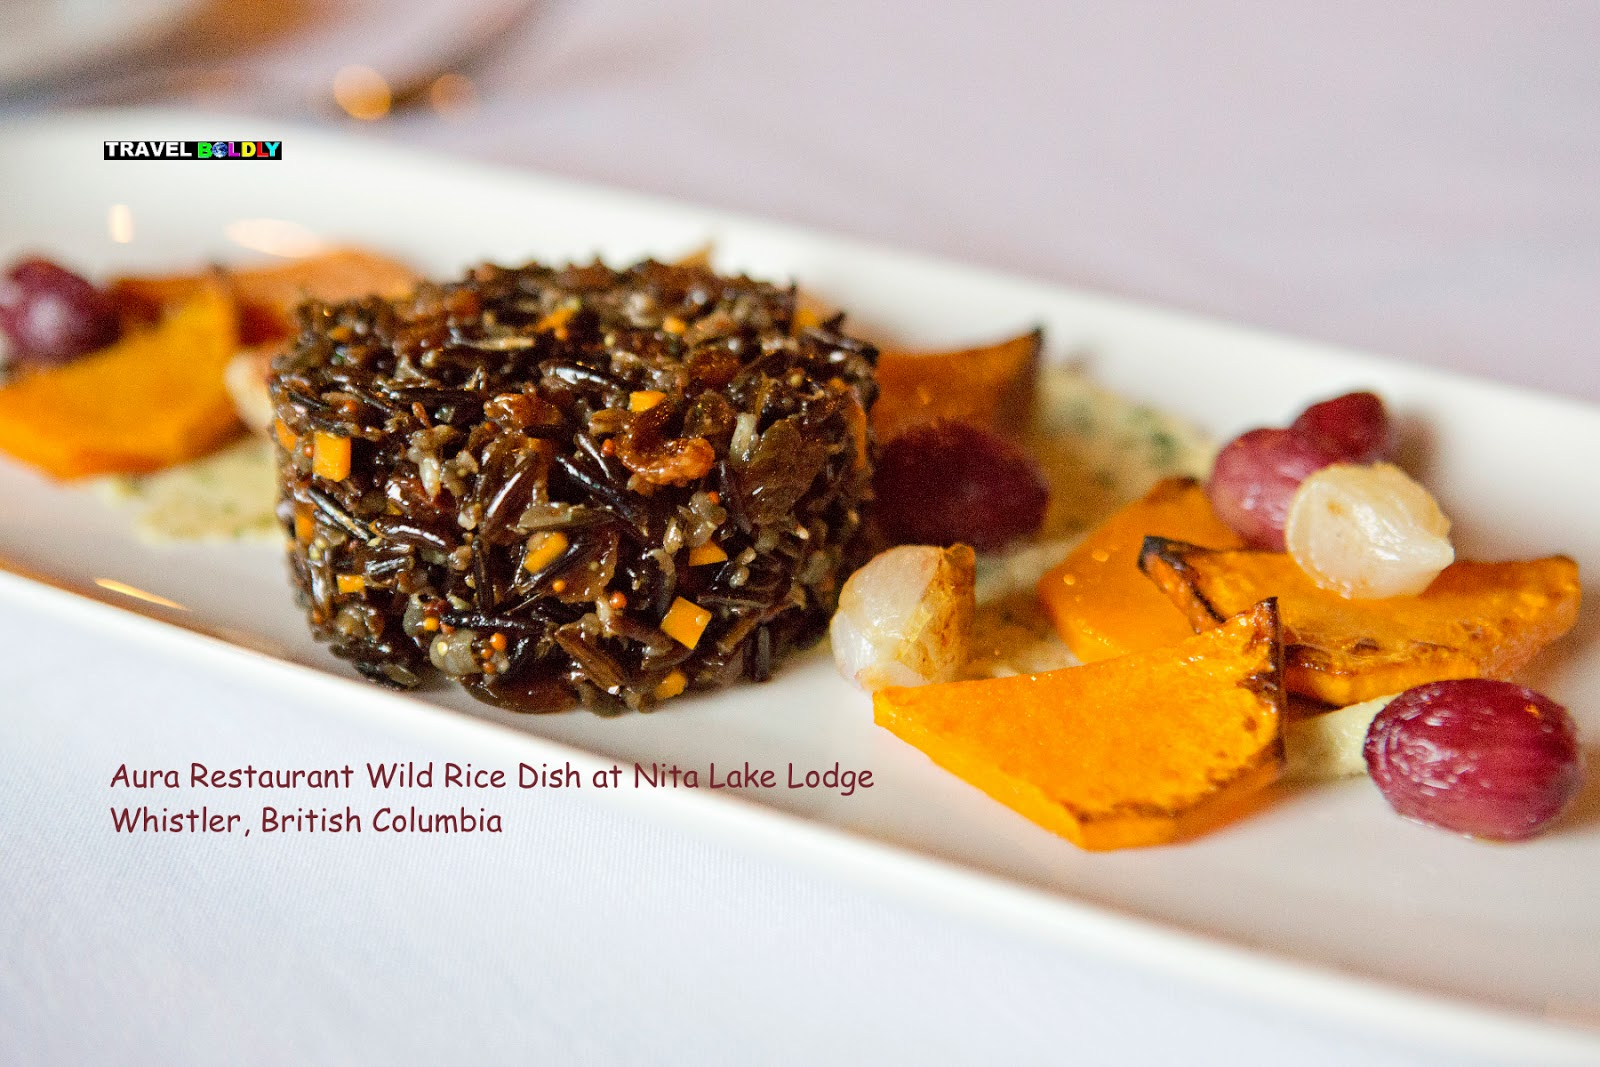 Aura Restaurant Wild Rice Dish at Nita Lake Lodge Whistler, British Columbia - Travel Boldly